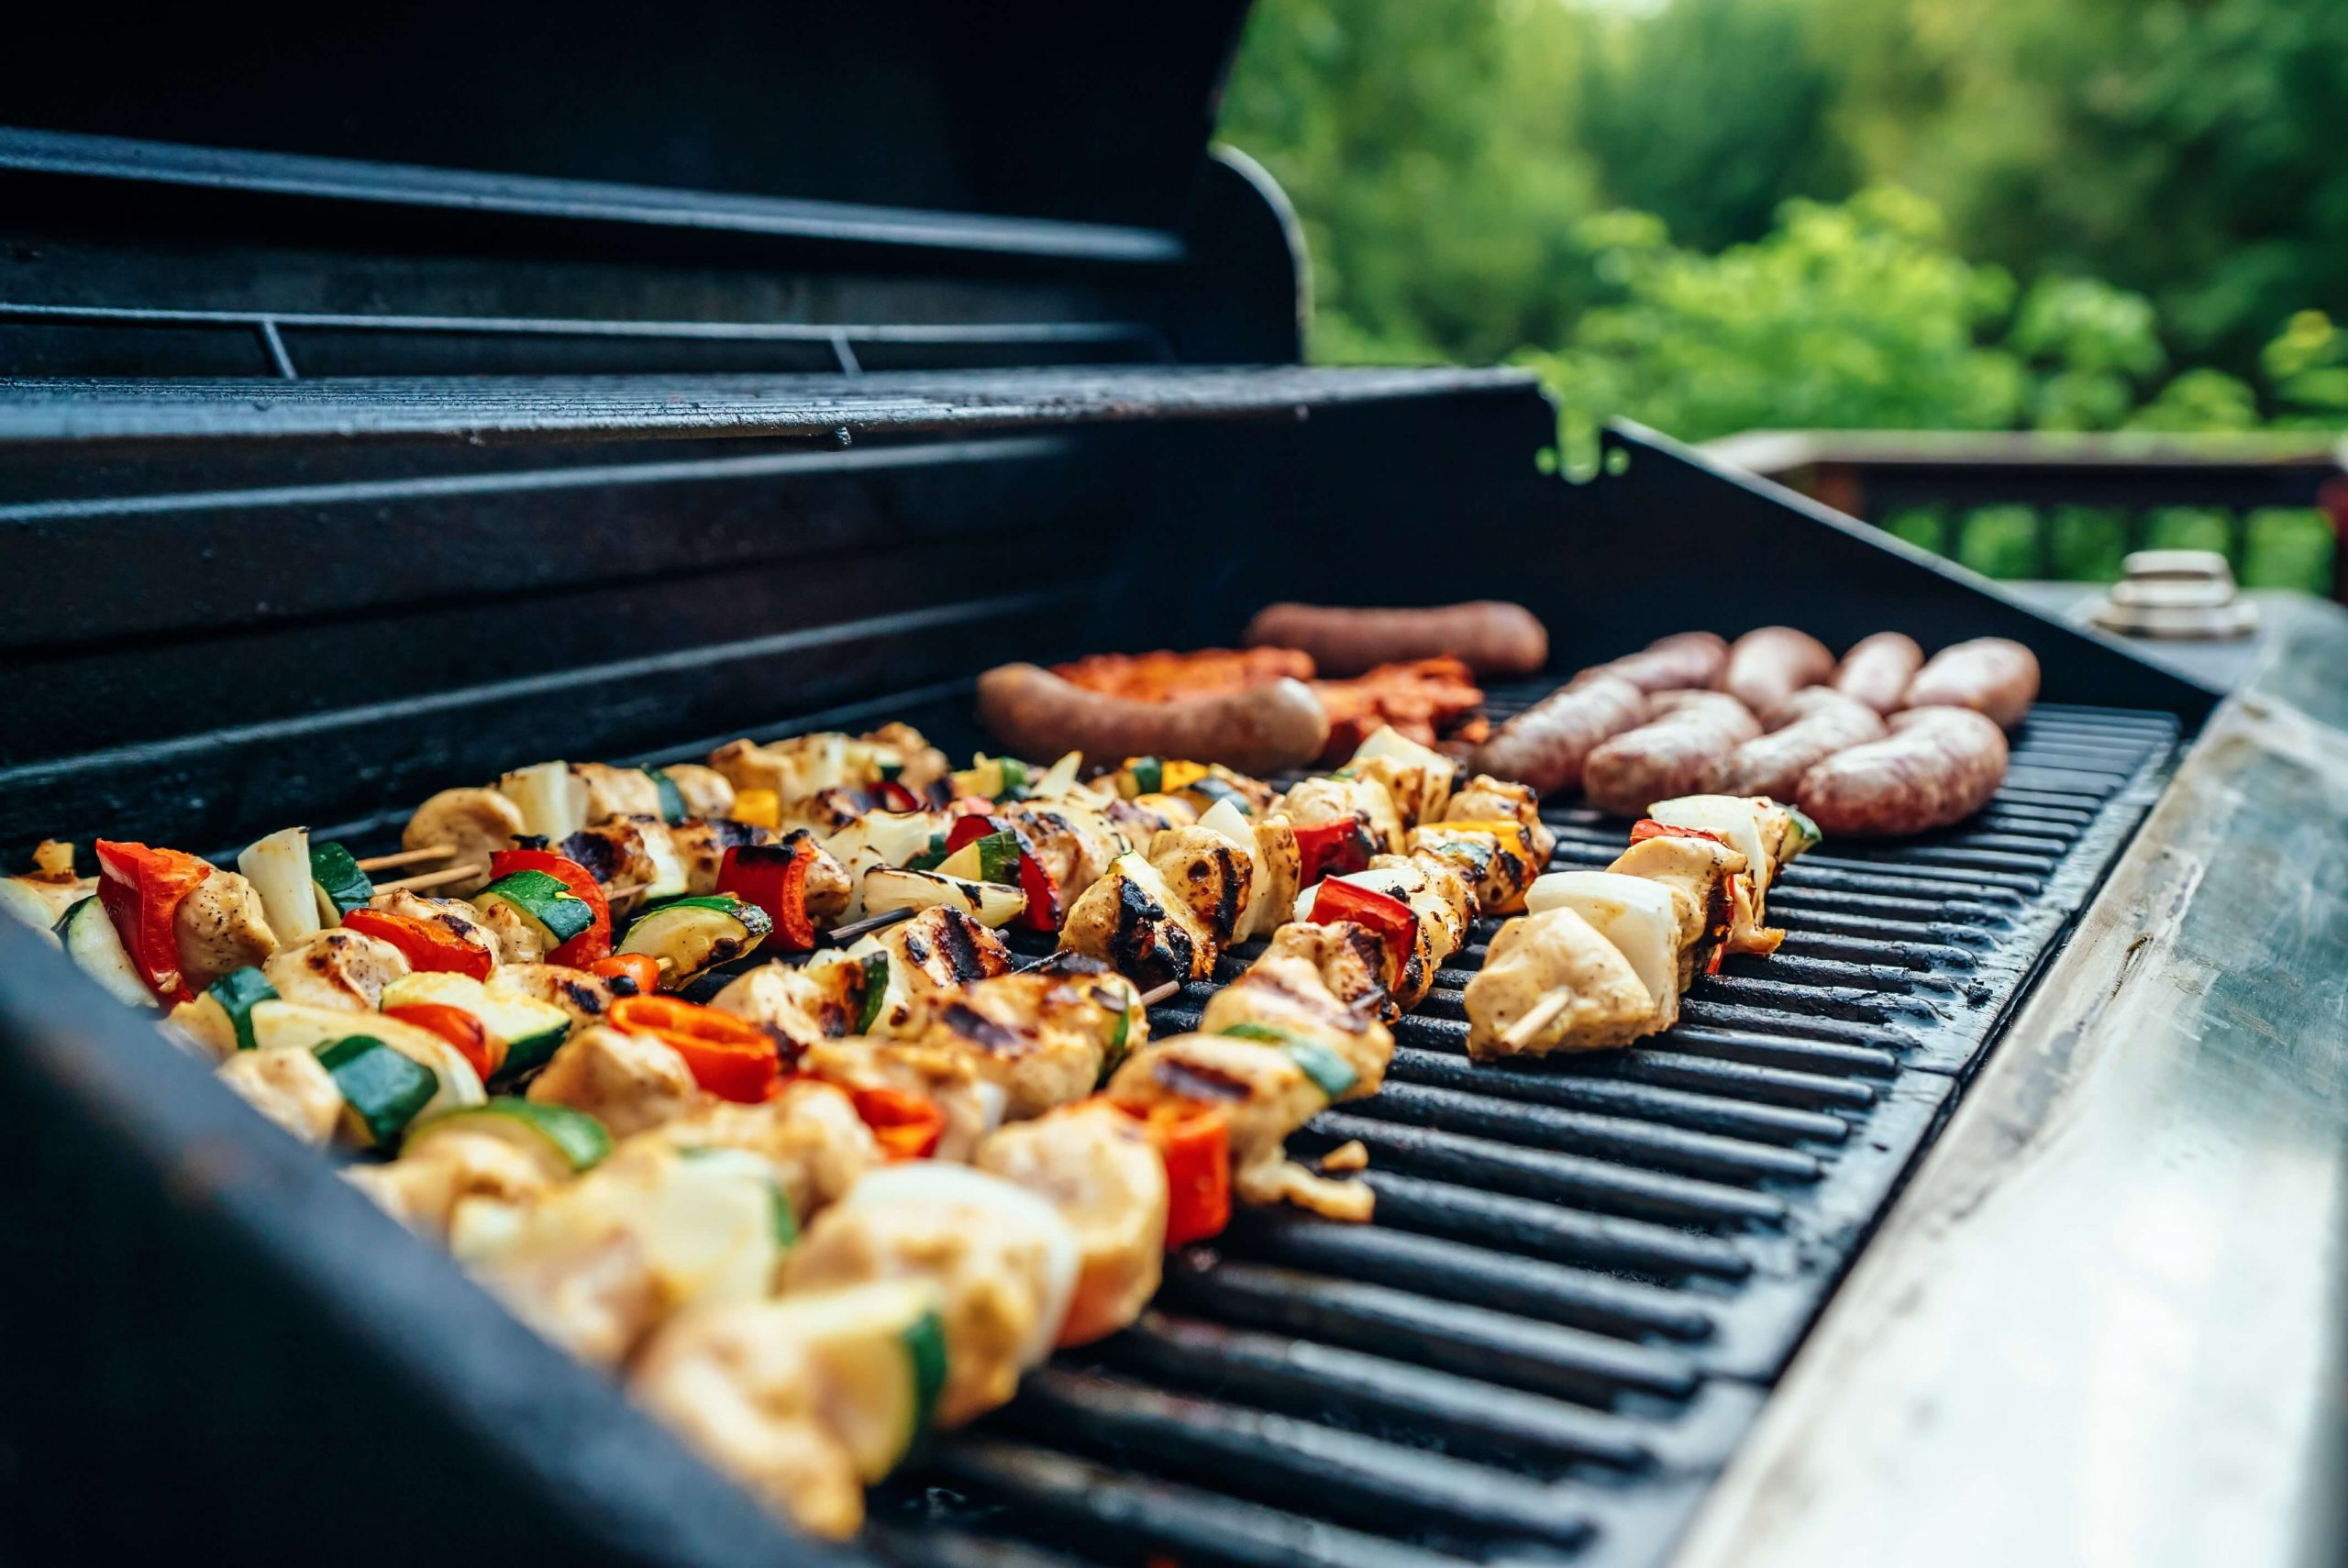 bbq party ideas header image